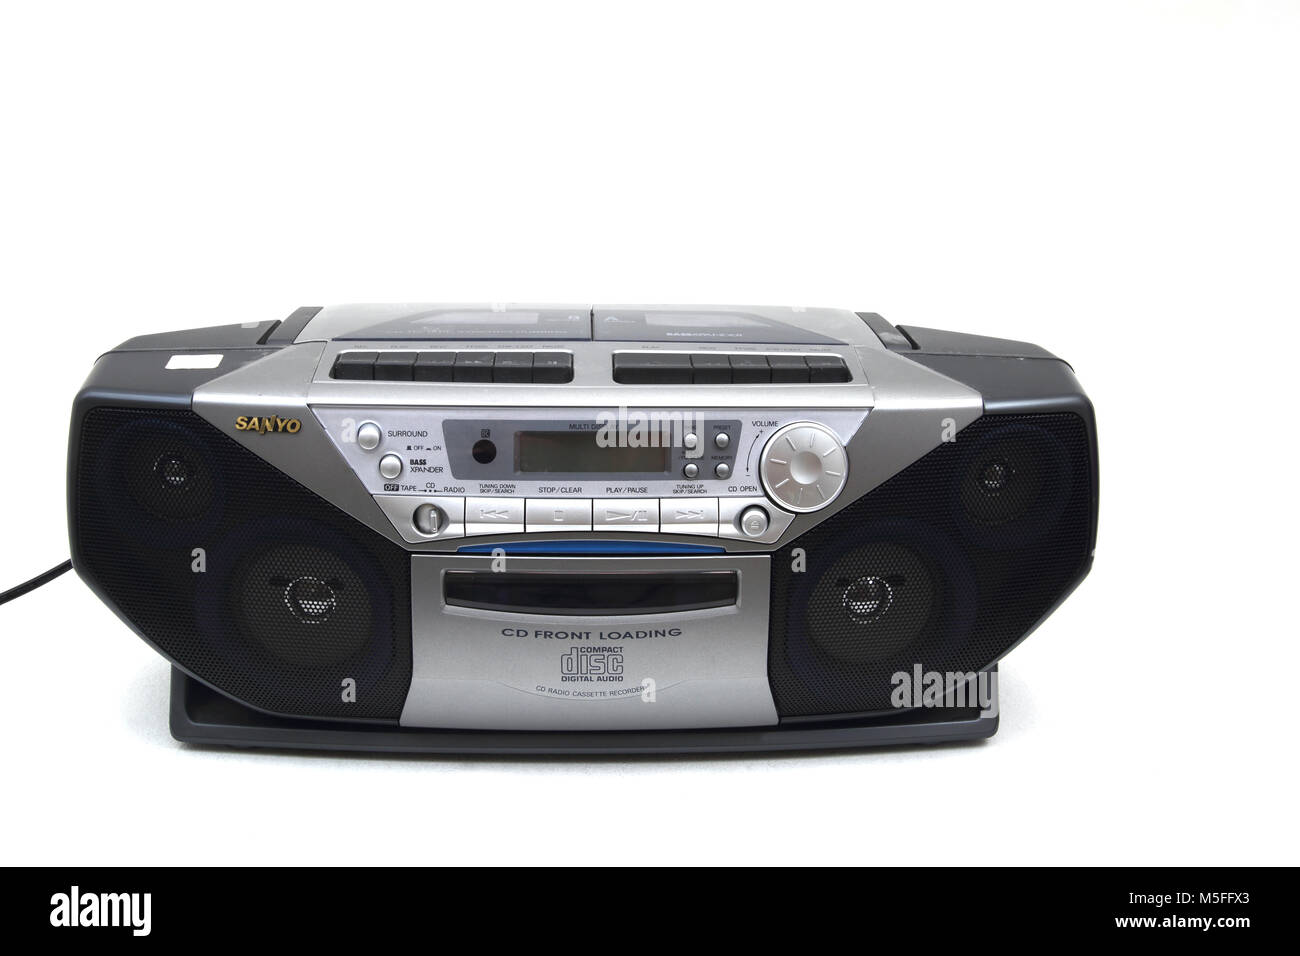 sanyo portable cd radio cassette recorder stock photo. Black Bedroom Furniture Sets. Home Design Ideas